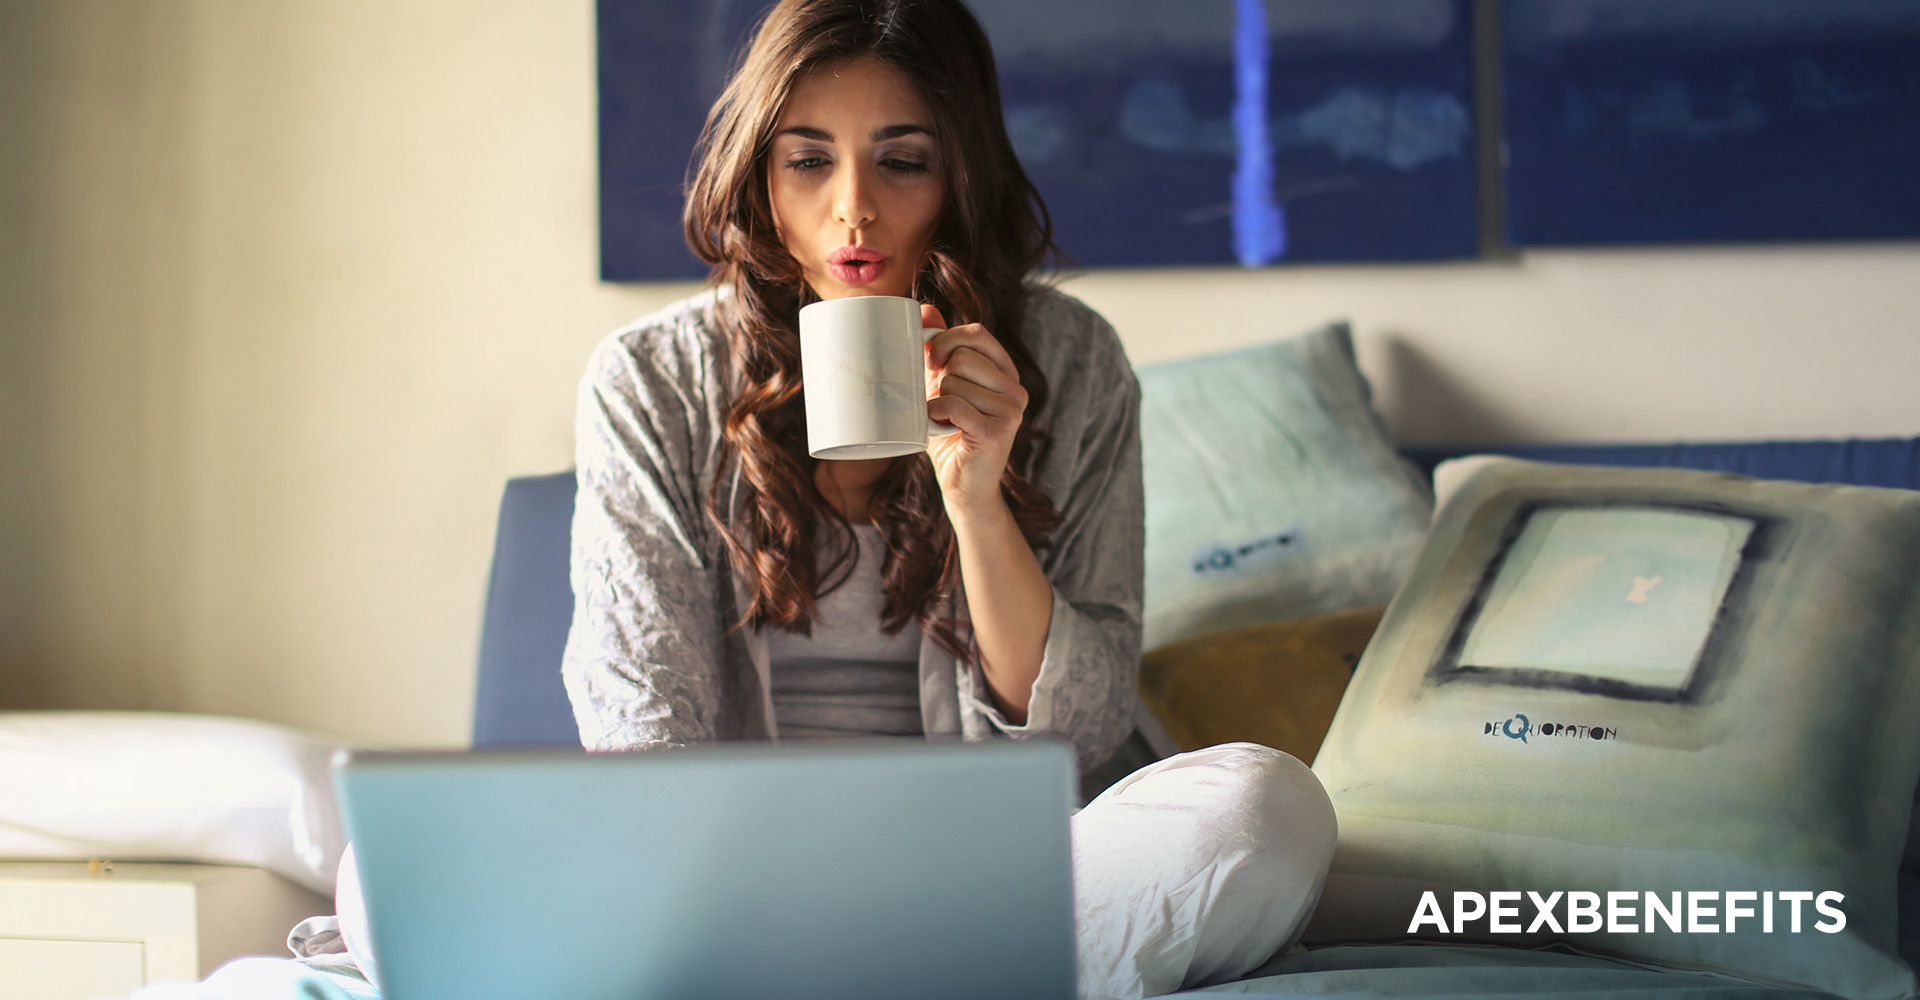 Wellness Wednesday - Staying Connected Working From Home